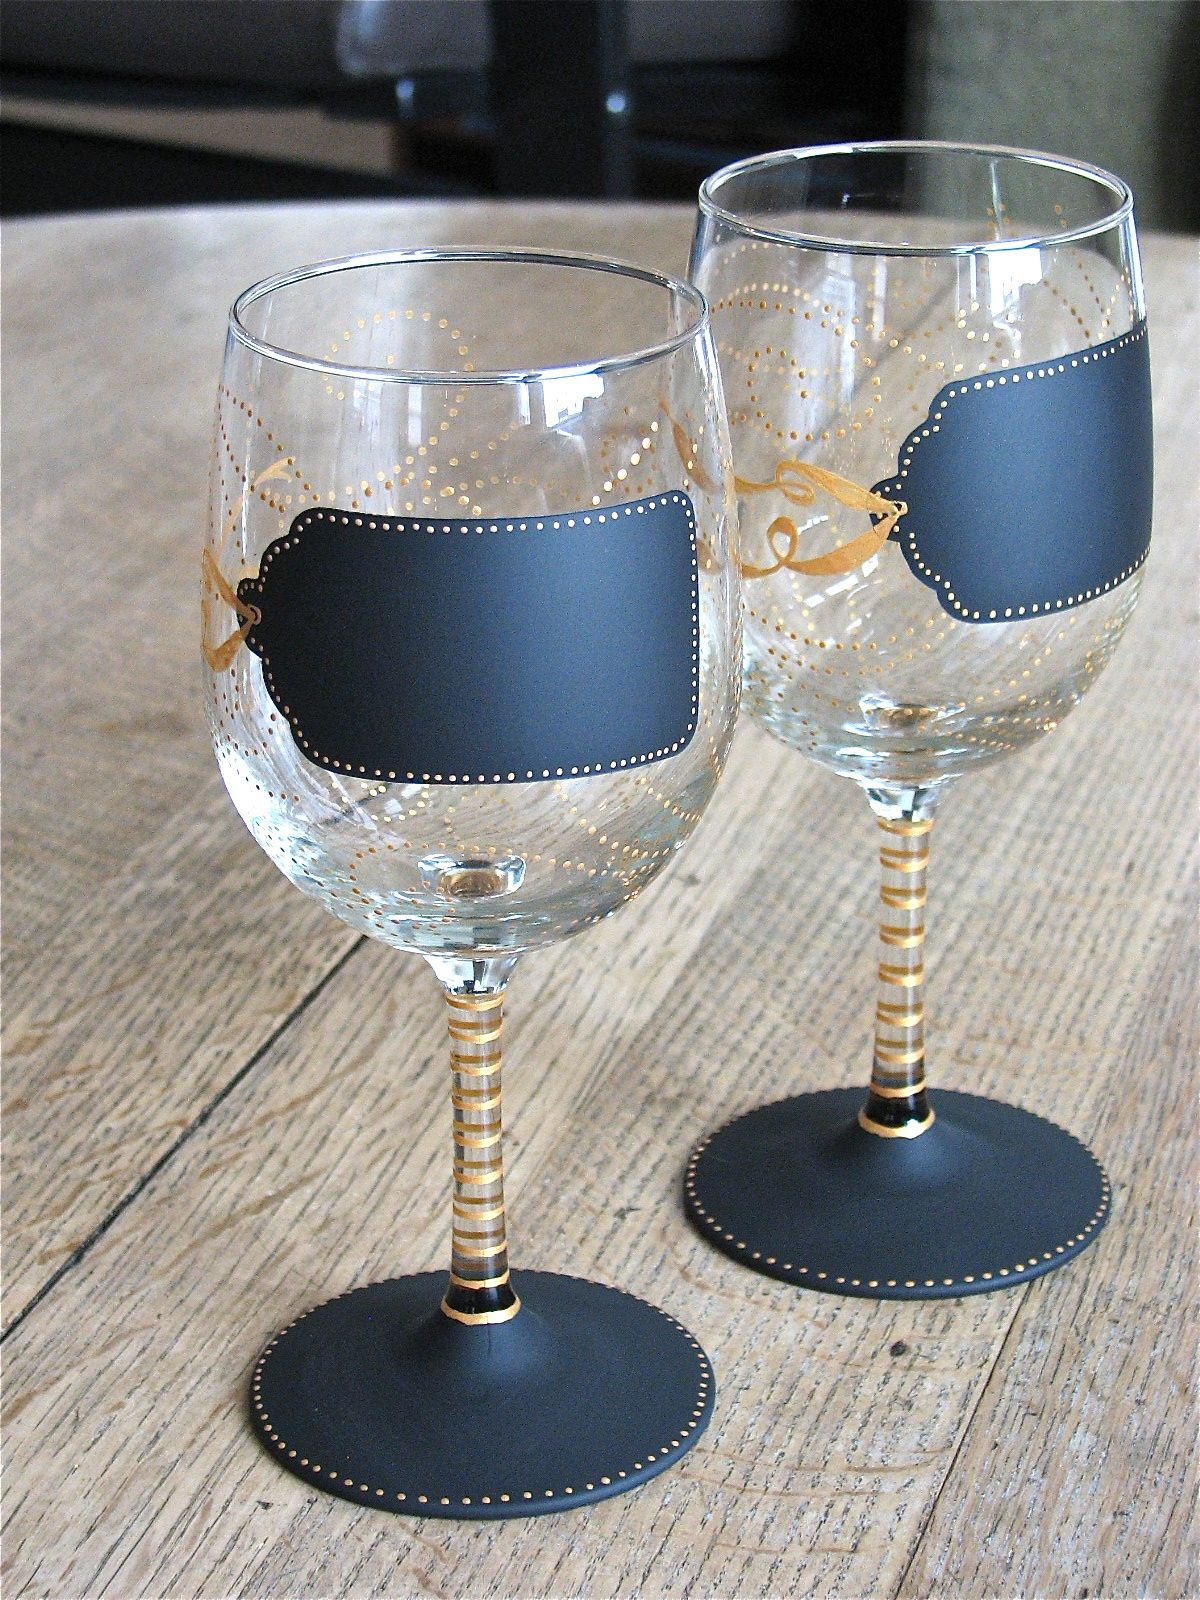 Hand Painted Wine Glasses Wholesale Hand Painted Chalkboard Wine Glasses From Chic Chalk